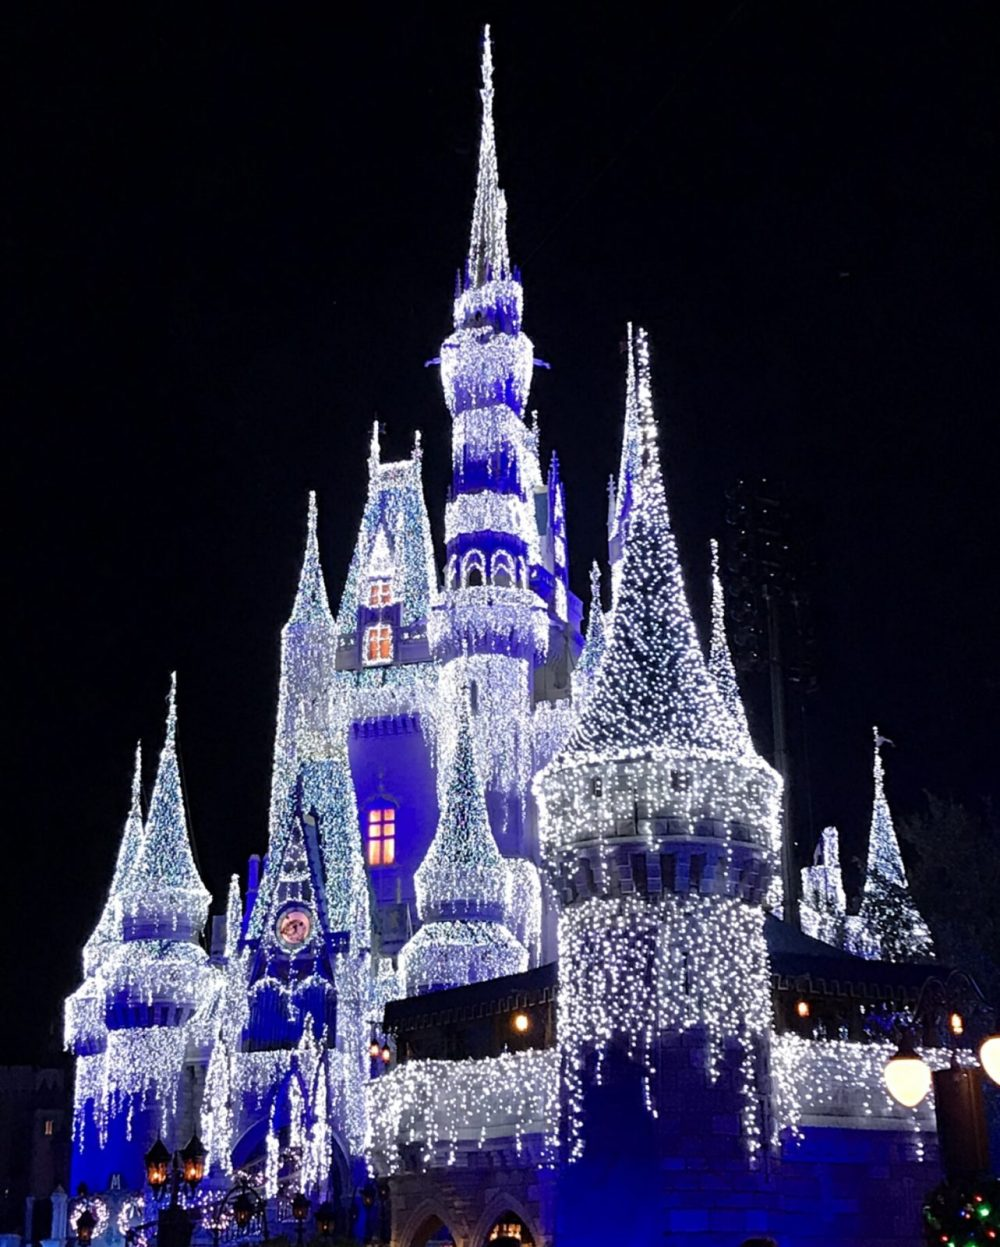 Cinderella Castle with lights during the holidays